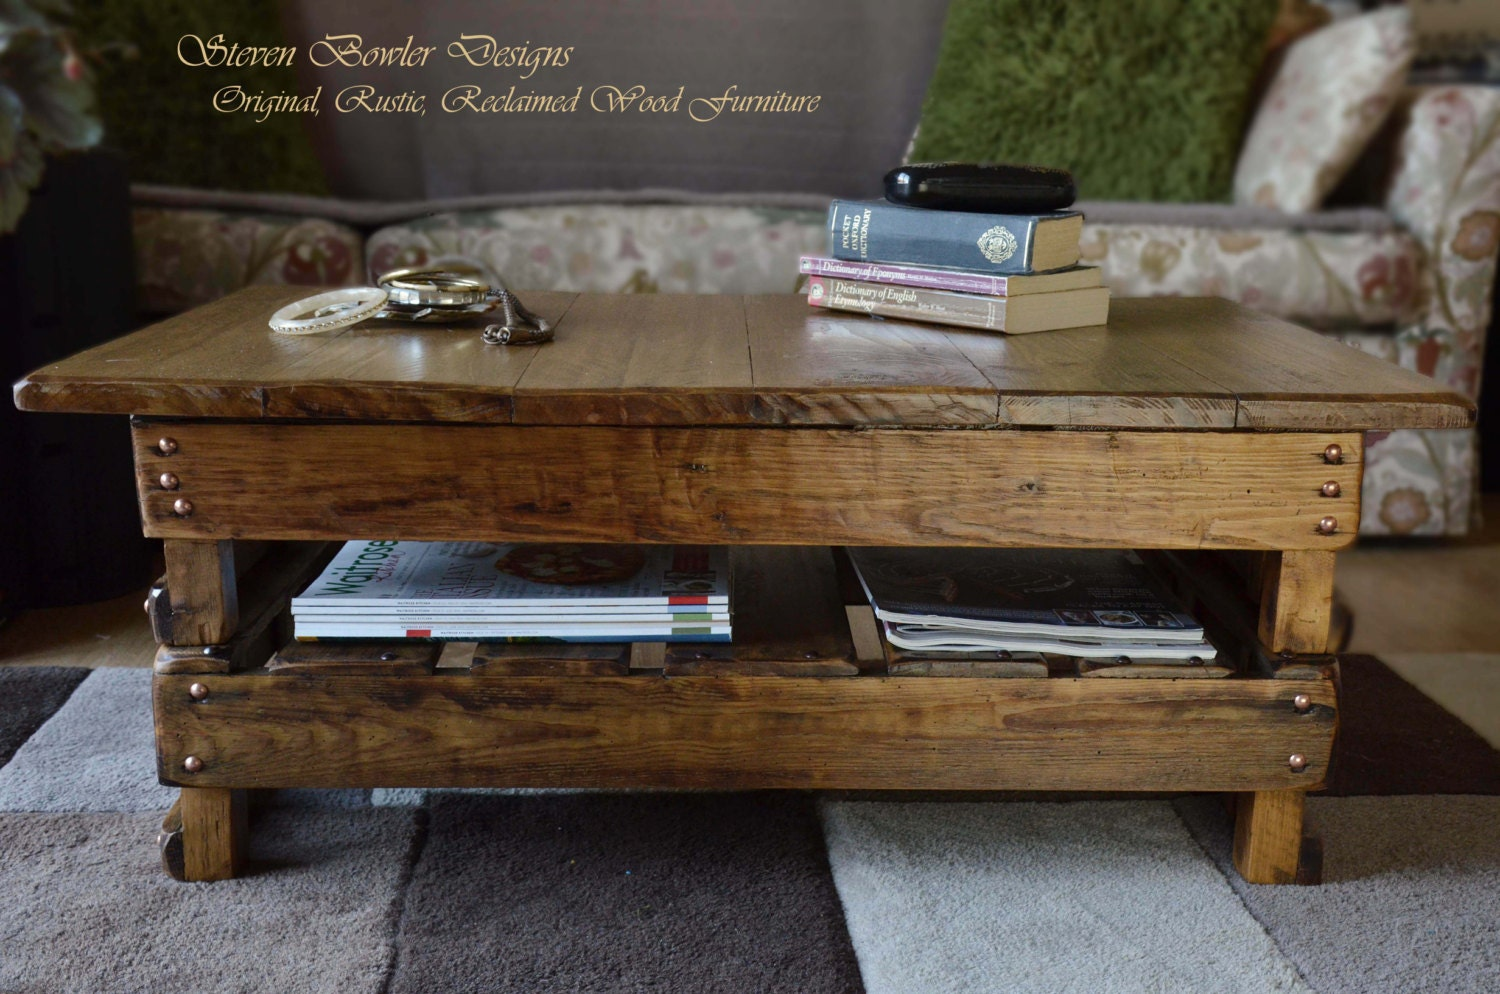 FREE UK SHIPPING Handcrafted to Order Country Cottage Rustic Reclaimed Wood  Coffee Table Medium Oak Stain Copper Tacks Undershelf Storage. FREE UK SHIPPING Handcrafted to Order Country Cottage Rustic